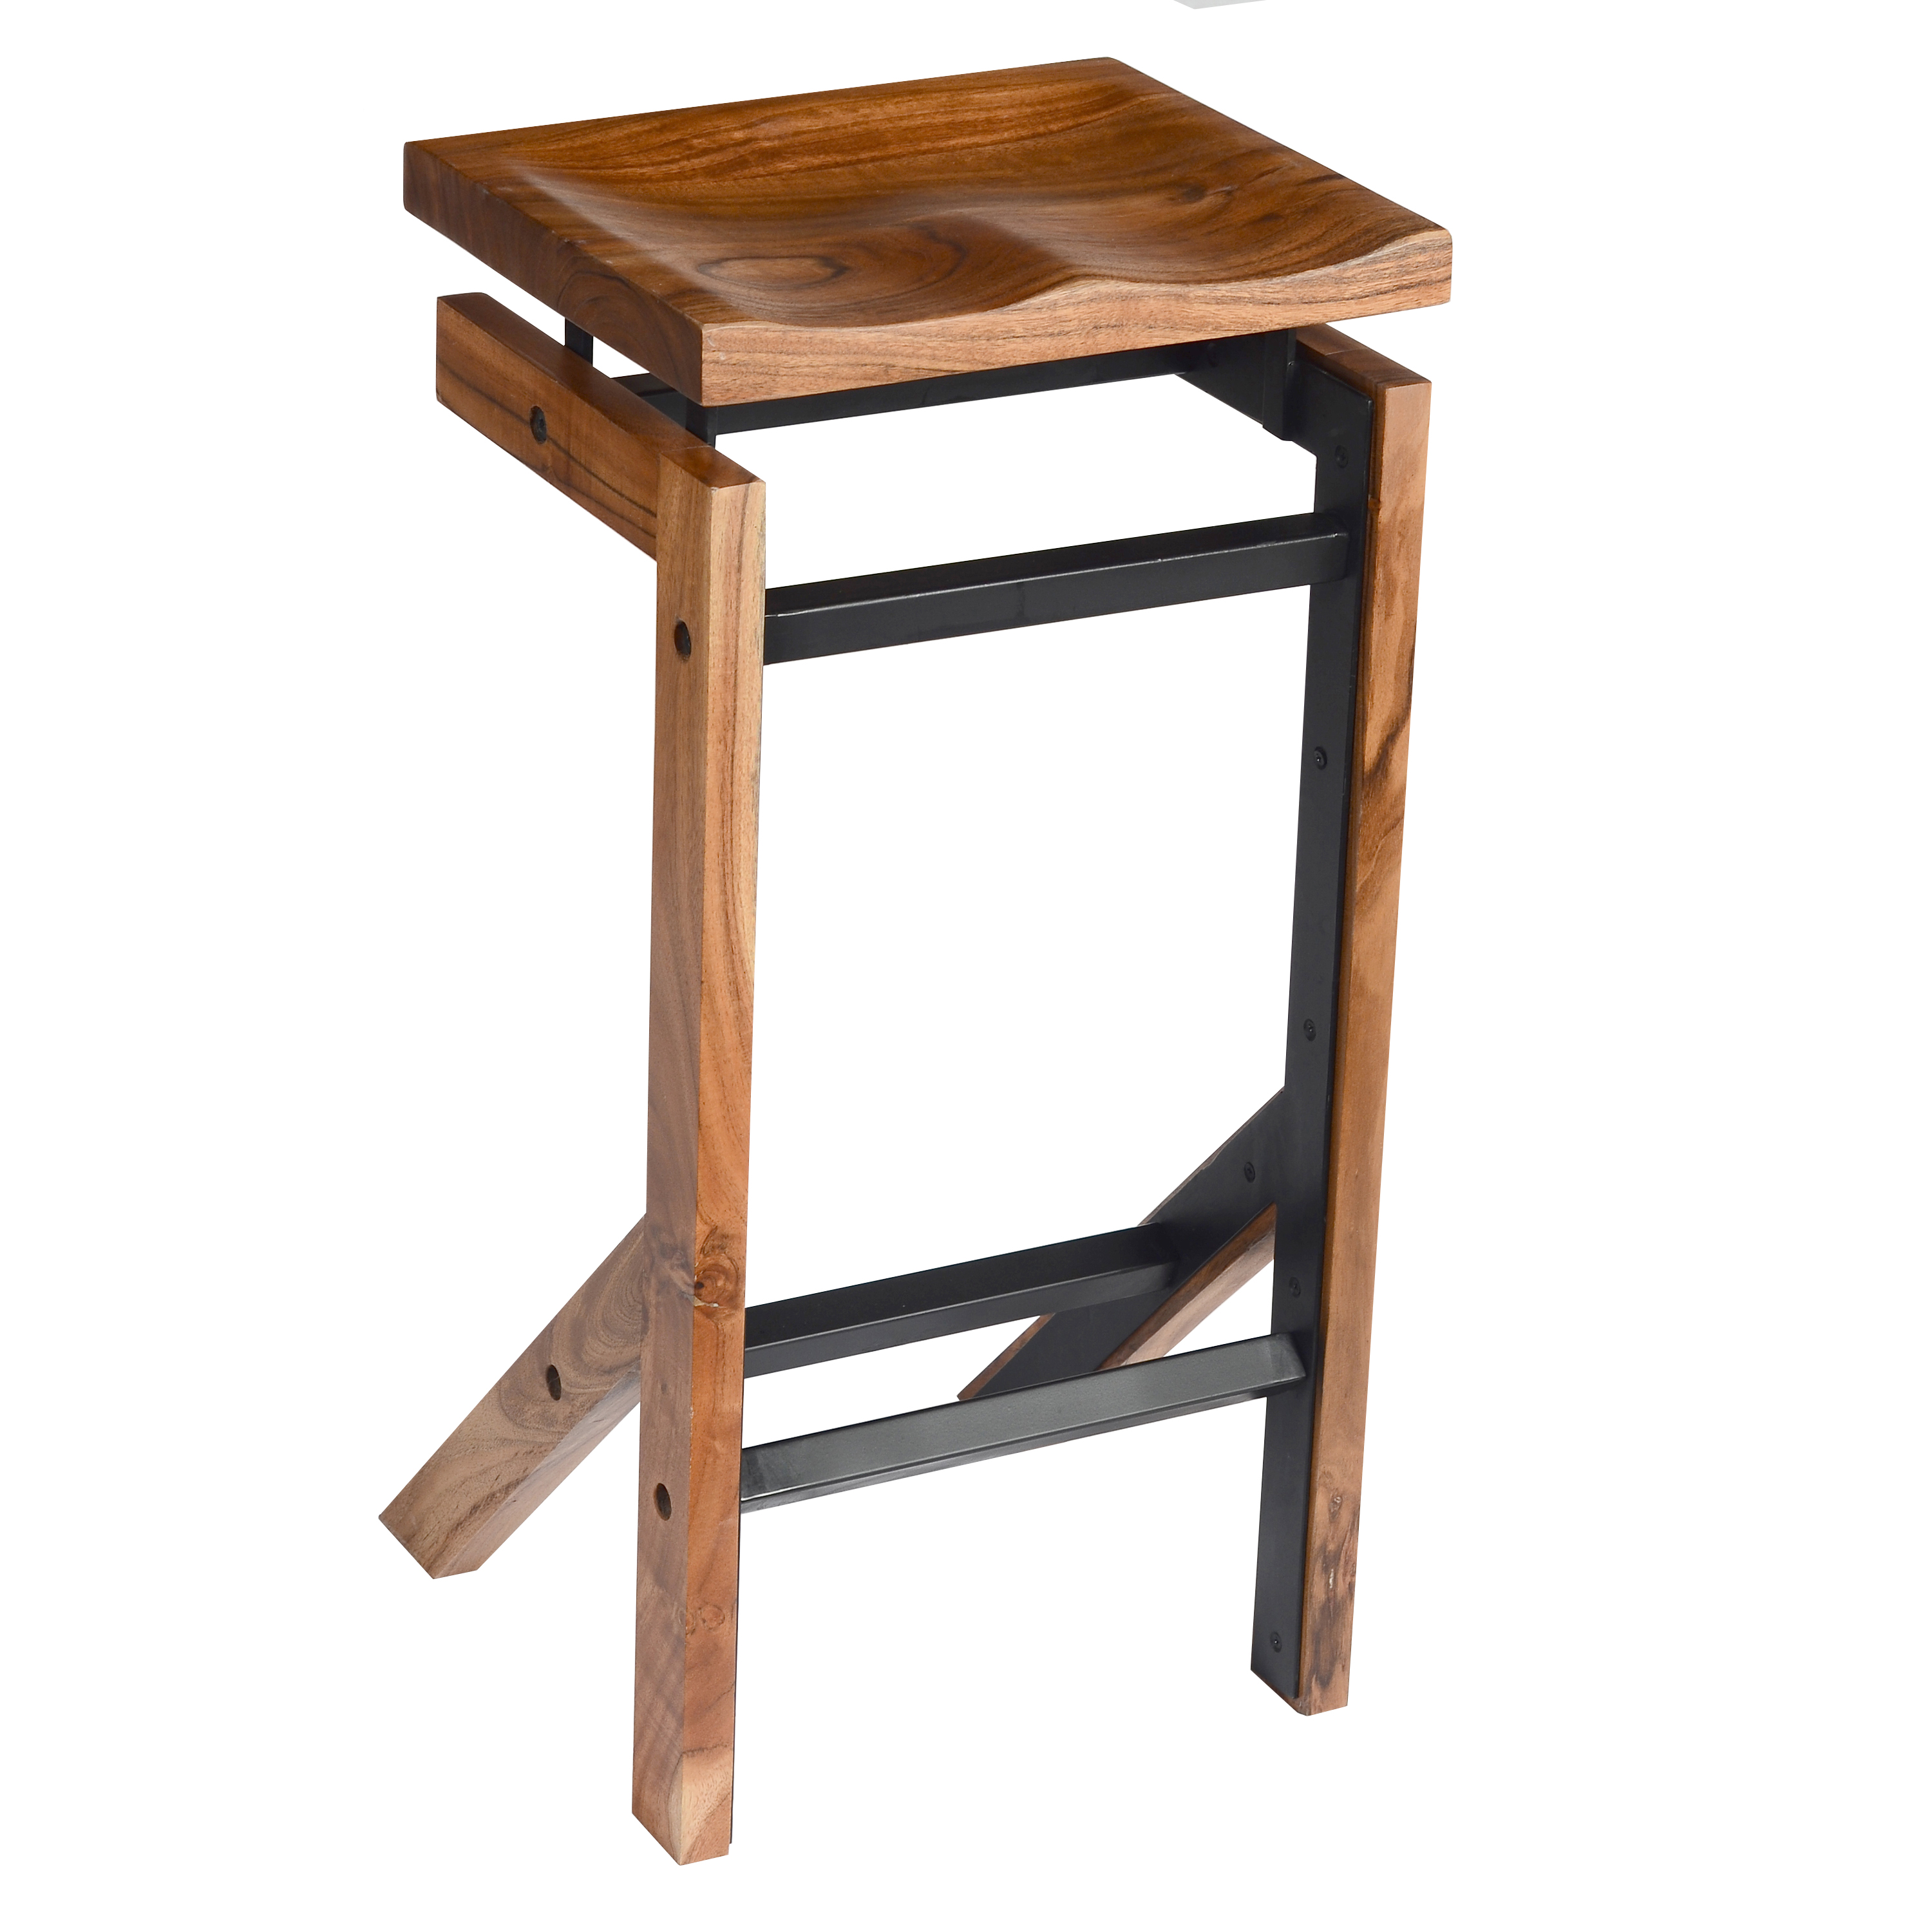 29 Inch Metal Frame Acacia Wood Bar Stool with Saddle Seat, Brown and Black